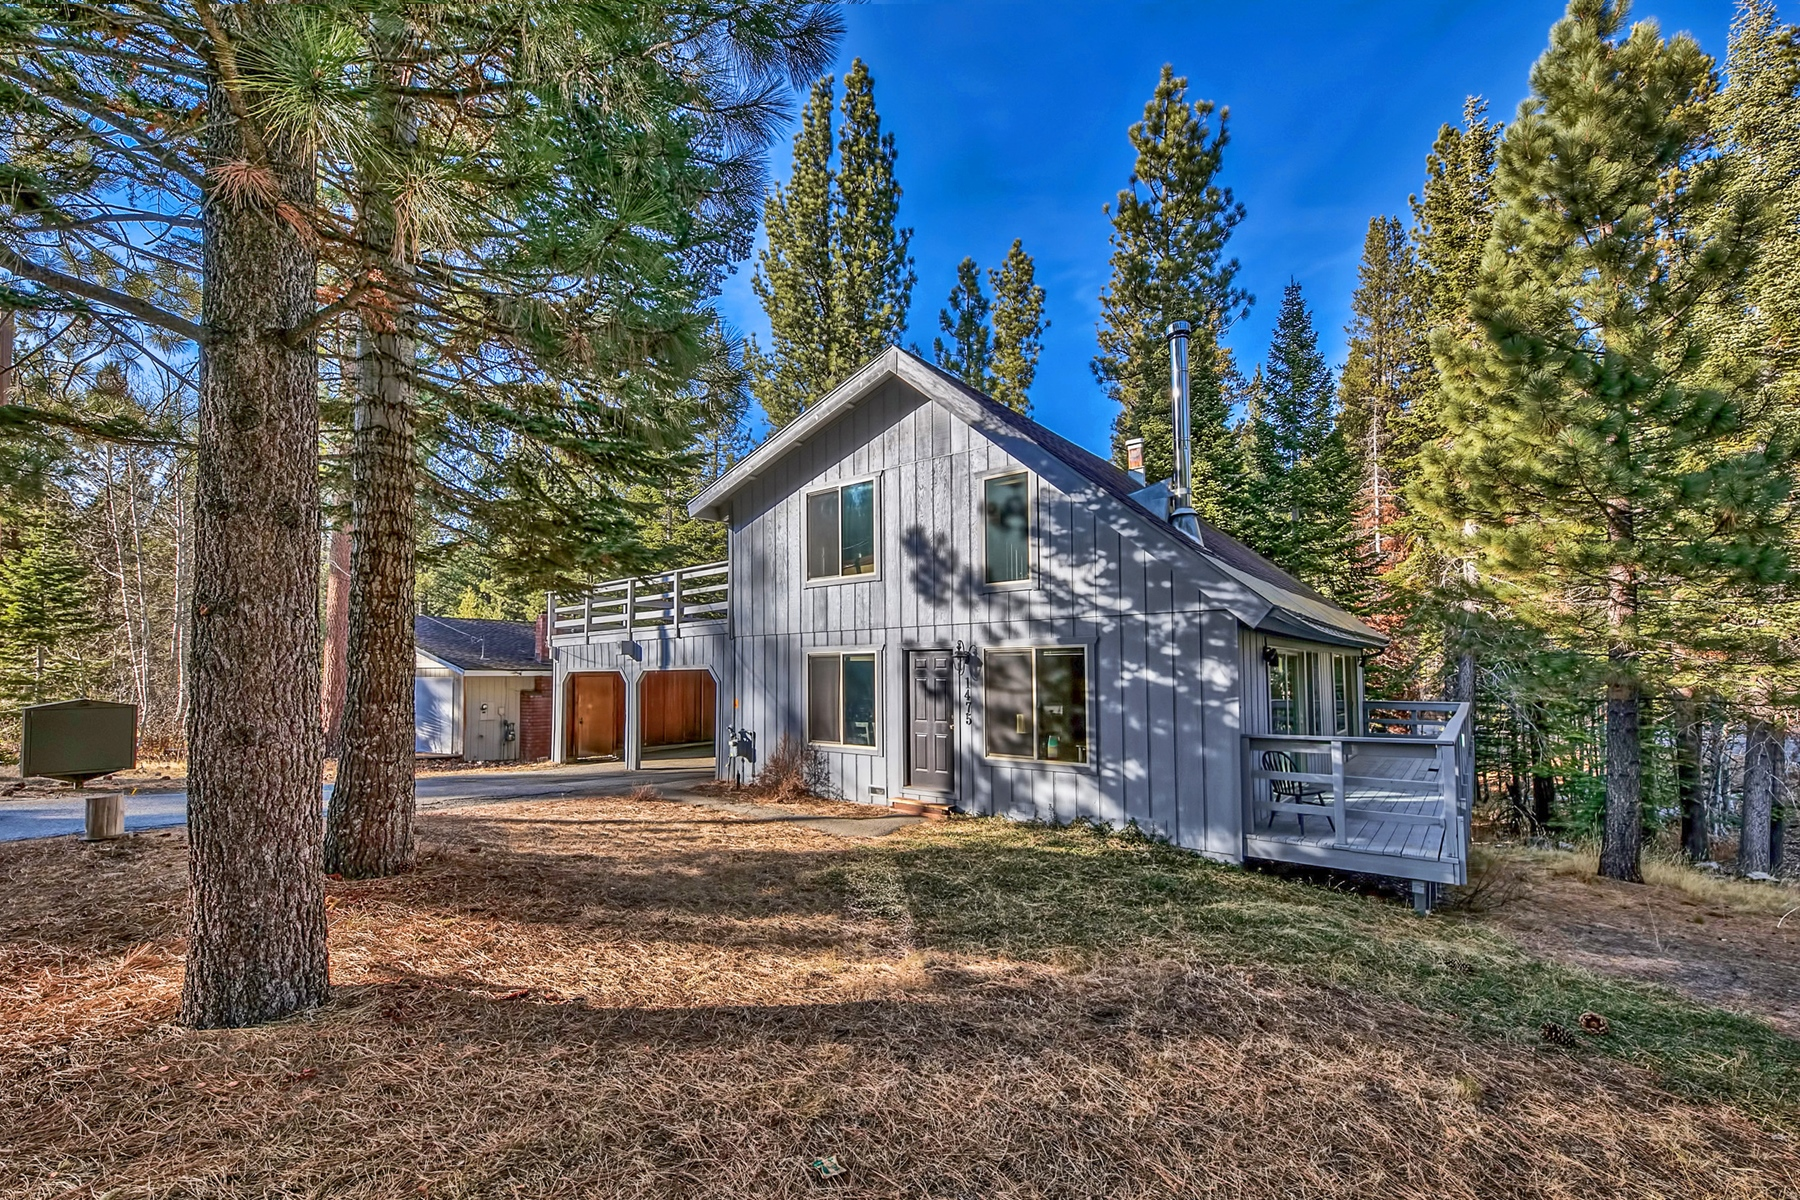 Single Family Home for Active at 1475 Vanderhoof Road, South Lake Tahoe, Ca 96150 1475 Vanderhoof Road South Lake Tahoe, California 96150 United States